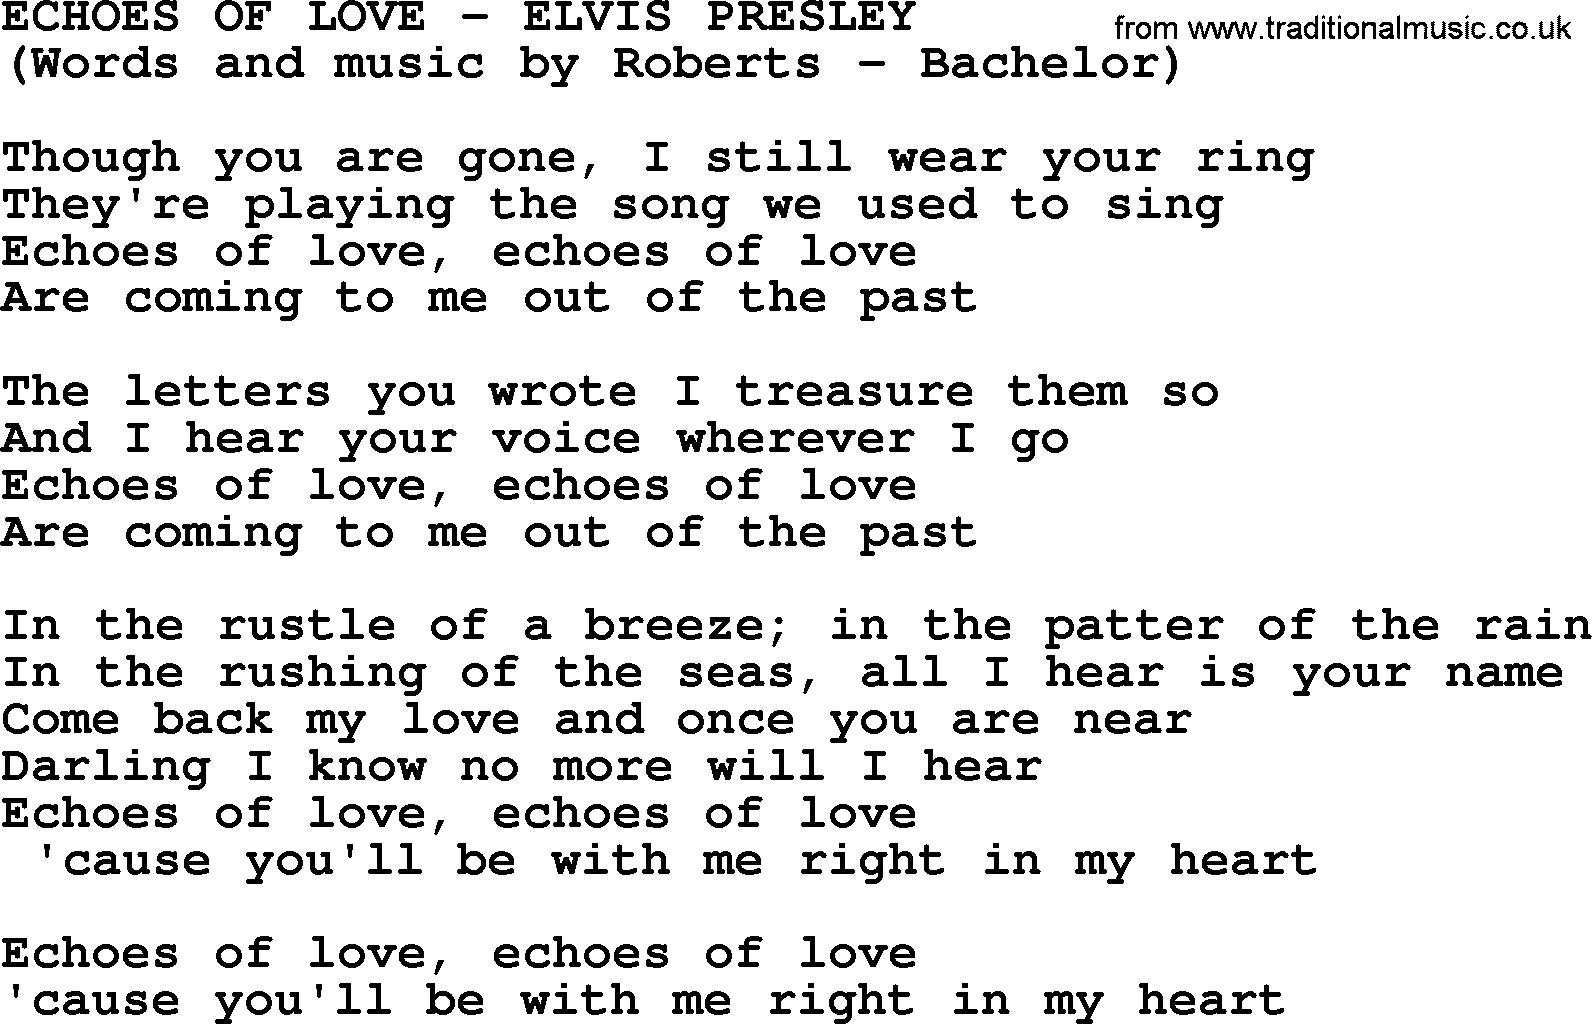 Echoes of love by elvis presley lyrics elvis presley song echoes of love lyrics hexwebz Images